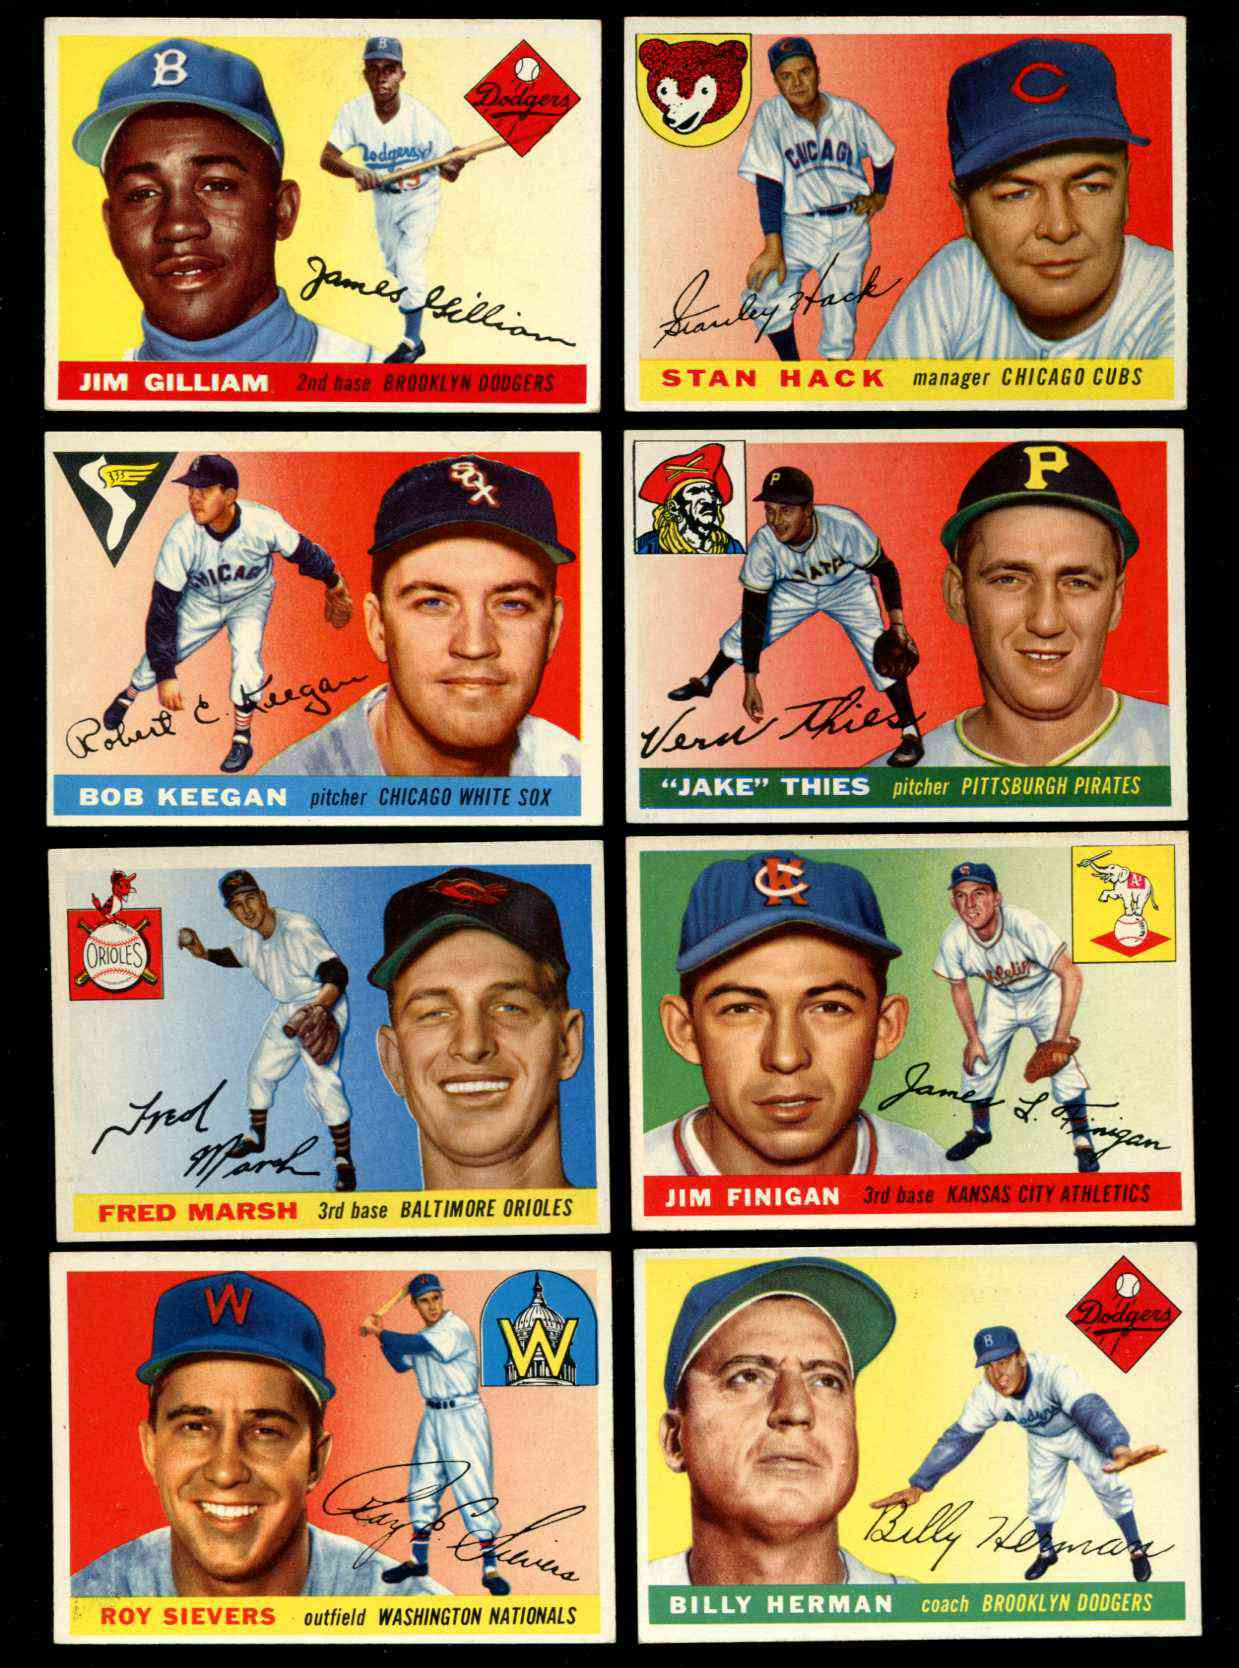 1955 Topps #..6 Stan Hack [#x] (Cubs Manager) Baseball cards value